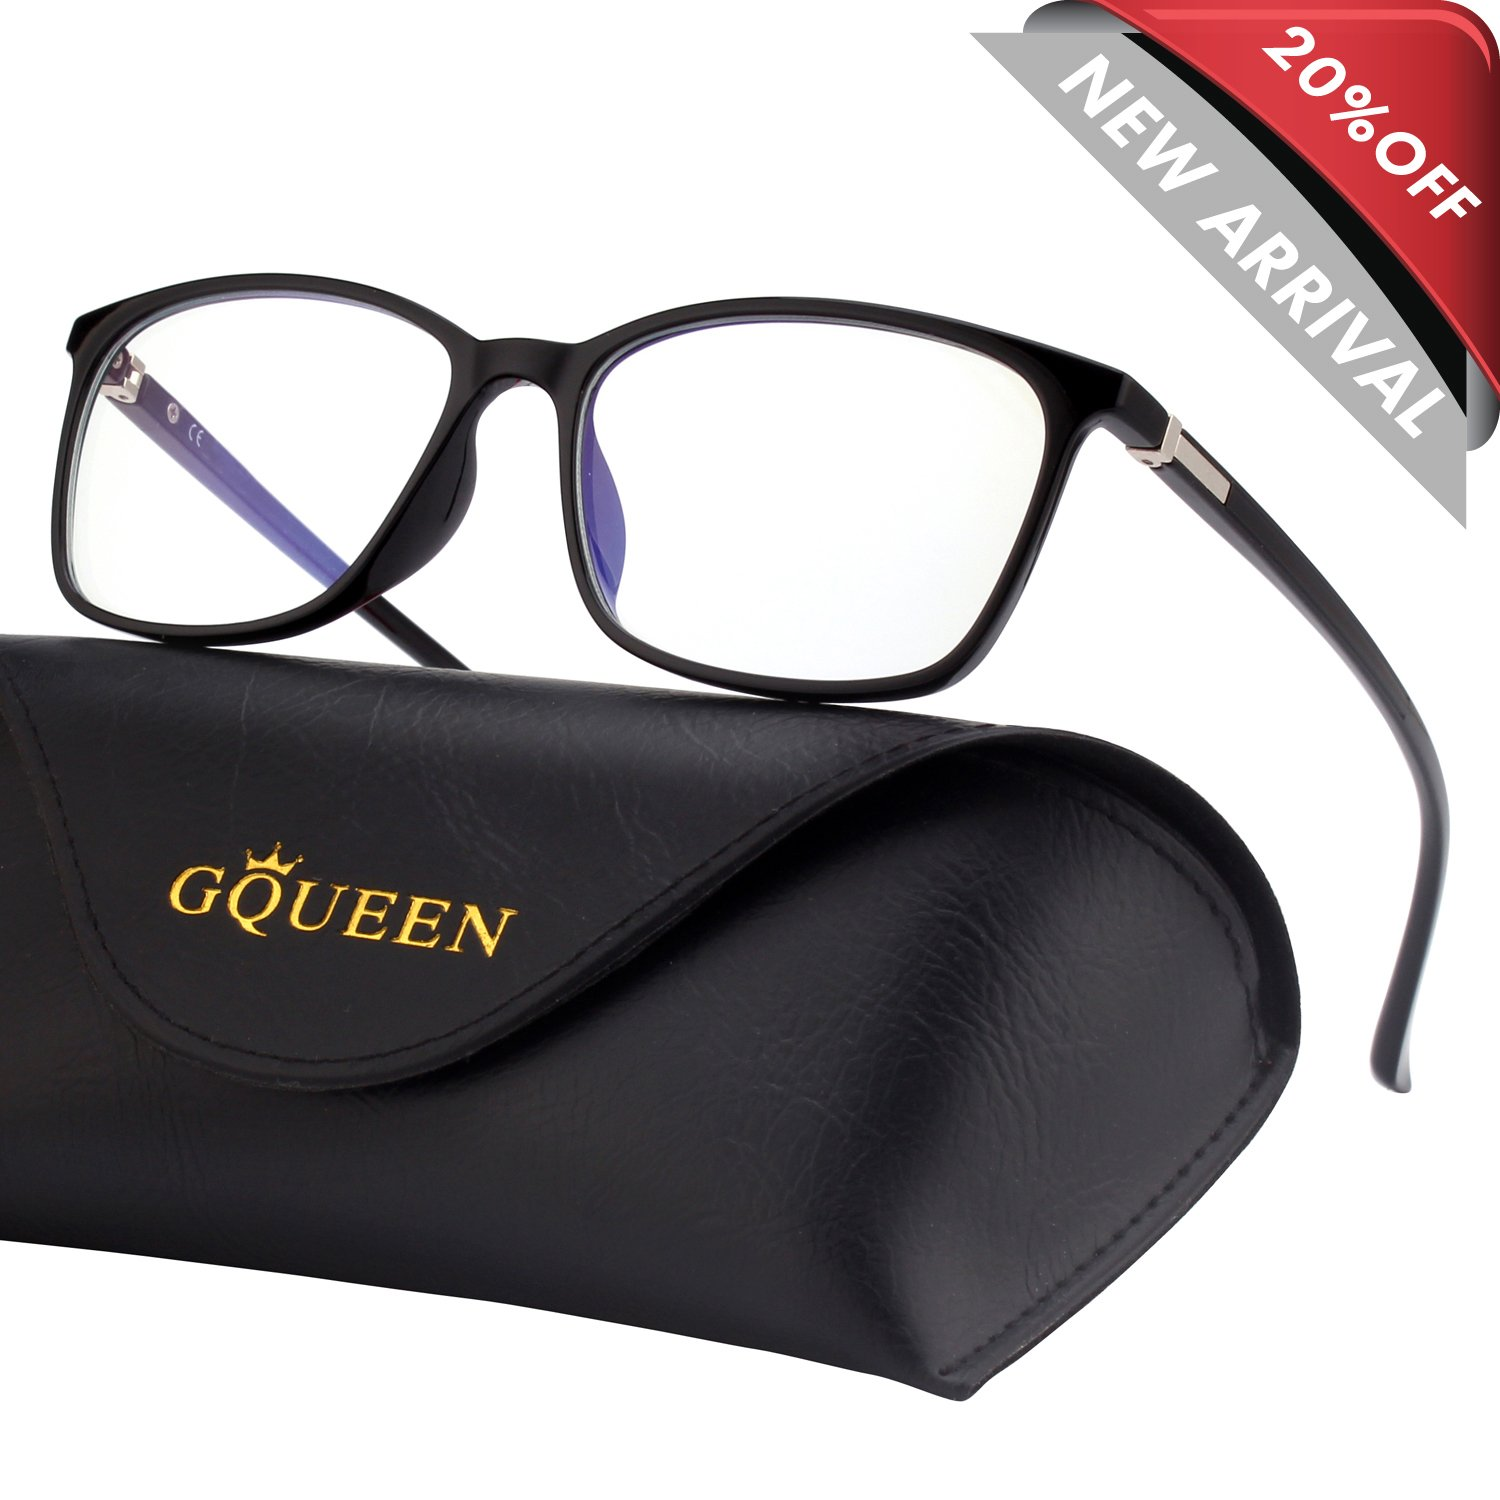 GQUEEN Blue Light Blocking Computer Glasses Gaming Better Sleep Anti Glare Eye Fatigue with TR90 Rectangle Frame Transparent Lens Unisex GQ318 by GQUEEN